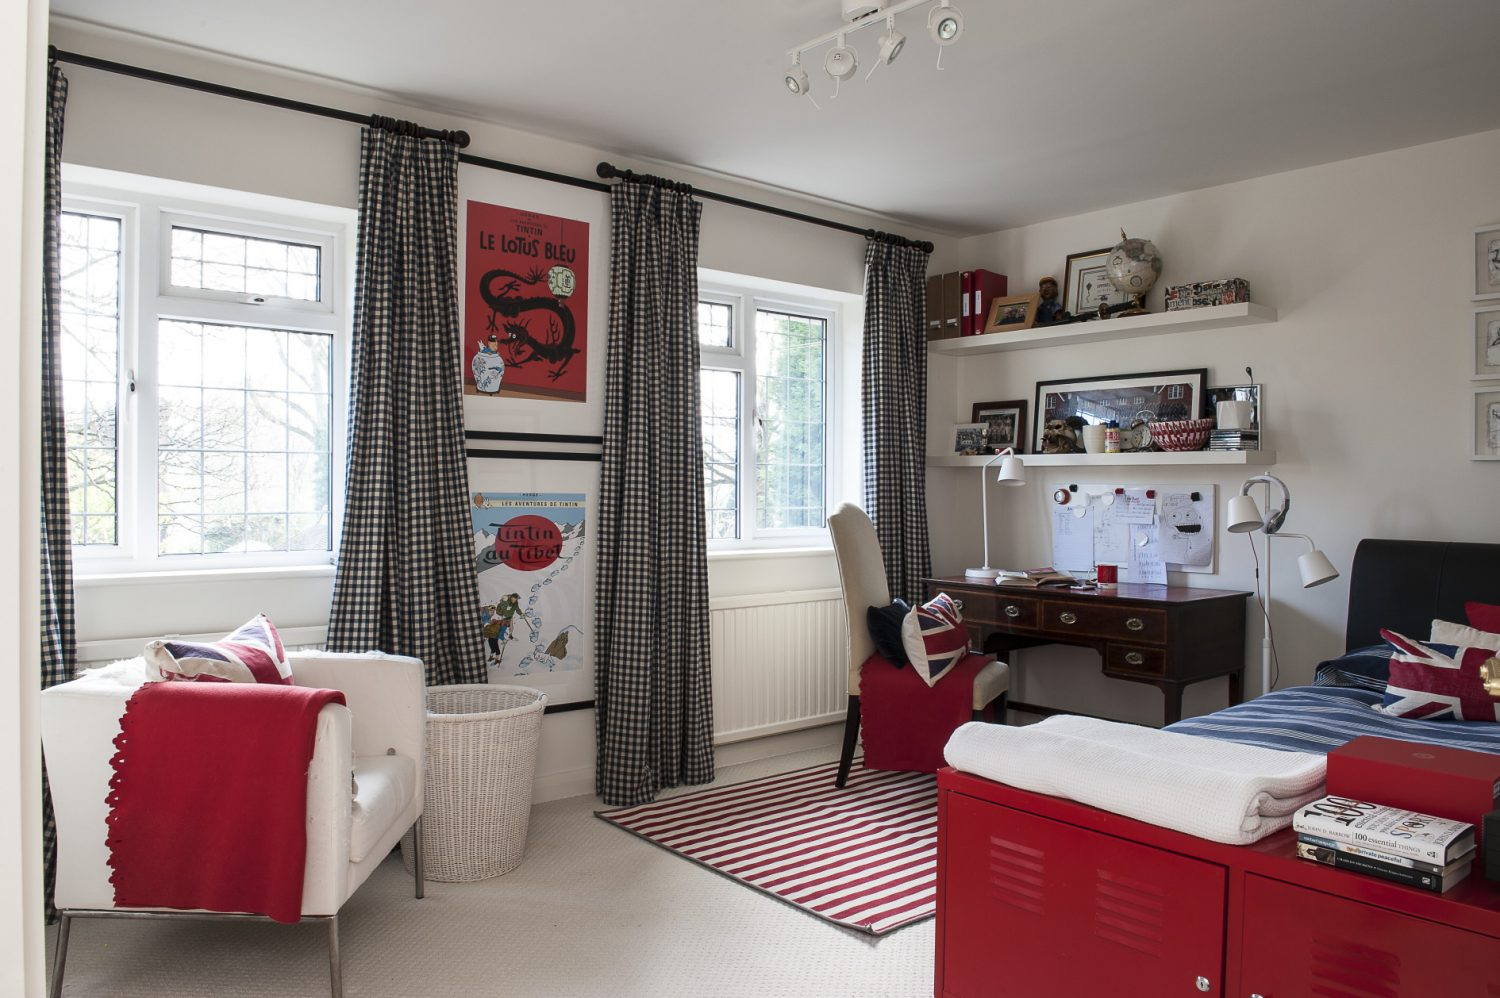 Adele's son's room is red and white and a pleasing juxtaposition of old and new